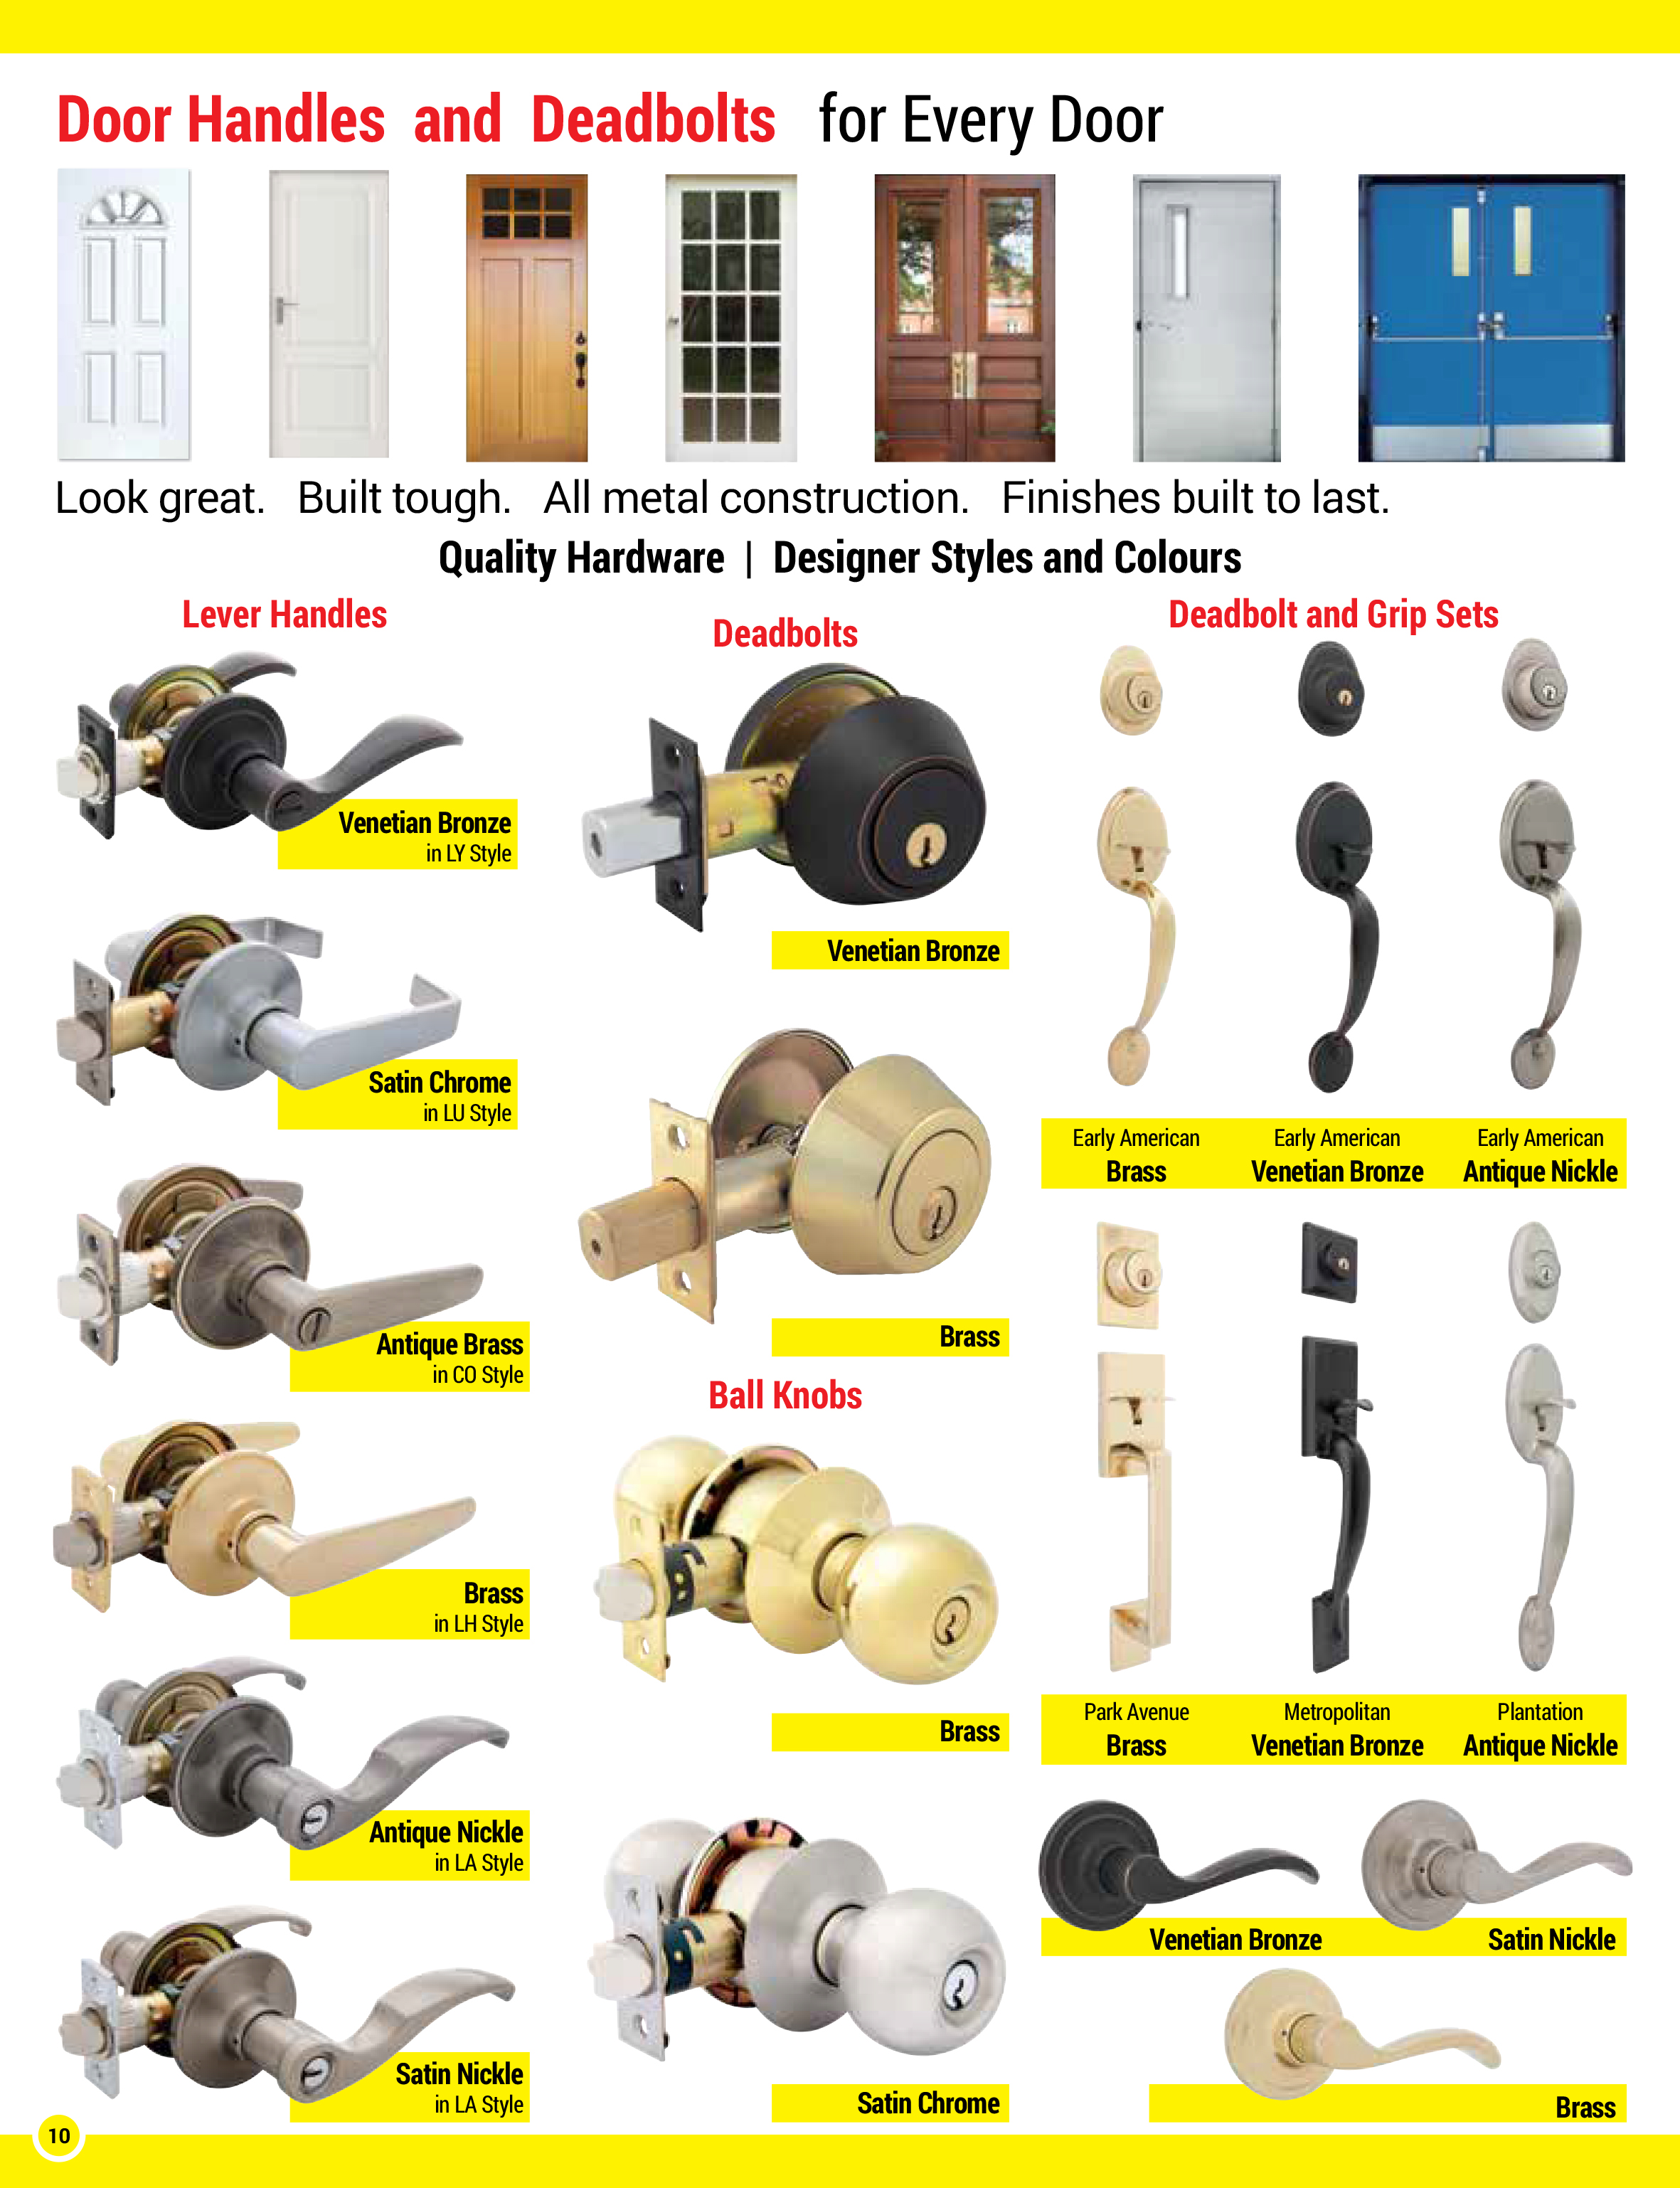 Door handles and deadbolts for every door, all metal construction, built tough look great, finishes built to last, quality hardware, designer styles and colours, lever handles in passage function, privacy function and locking entrance function in a variety of colours, venetian bronze, satin chrome, antique brass, gloss brass, antique nickle and satin nickle. Deadbolts single-sided or double-sided in a variety of colours, door knobs in passage, privacy and keyed entrance functions, in a variety of colours. Superior grip sets, complete with deadbolts